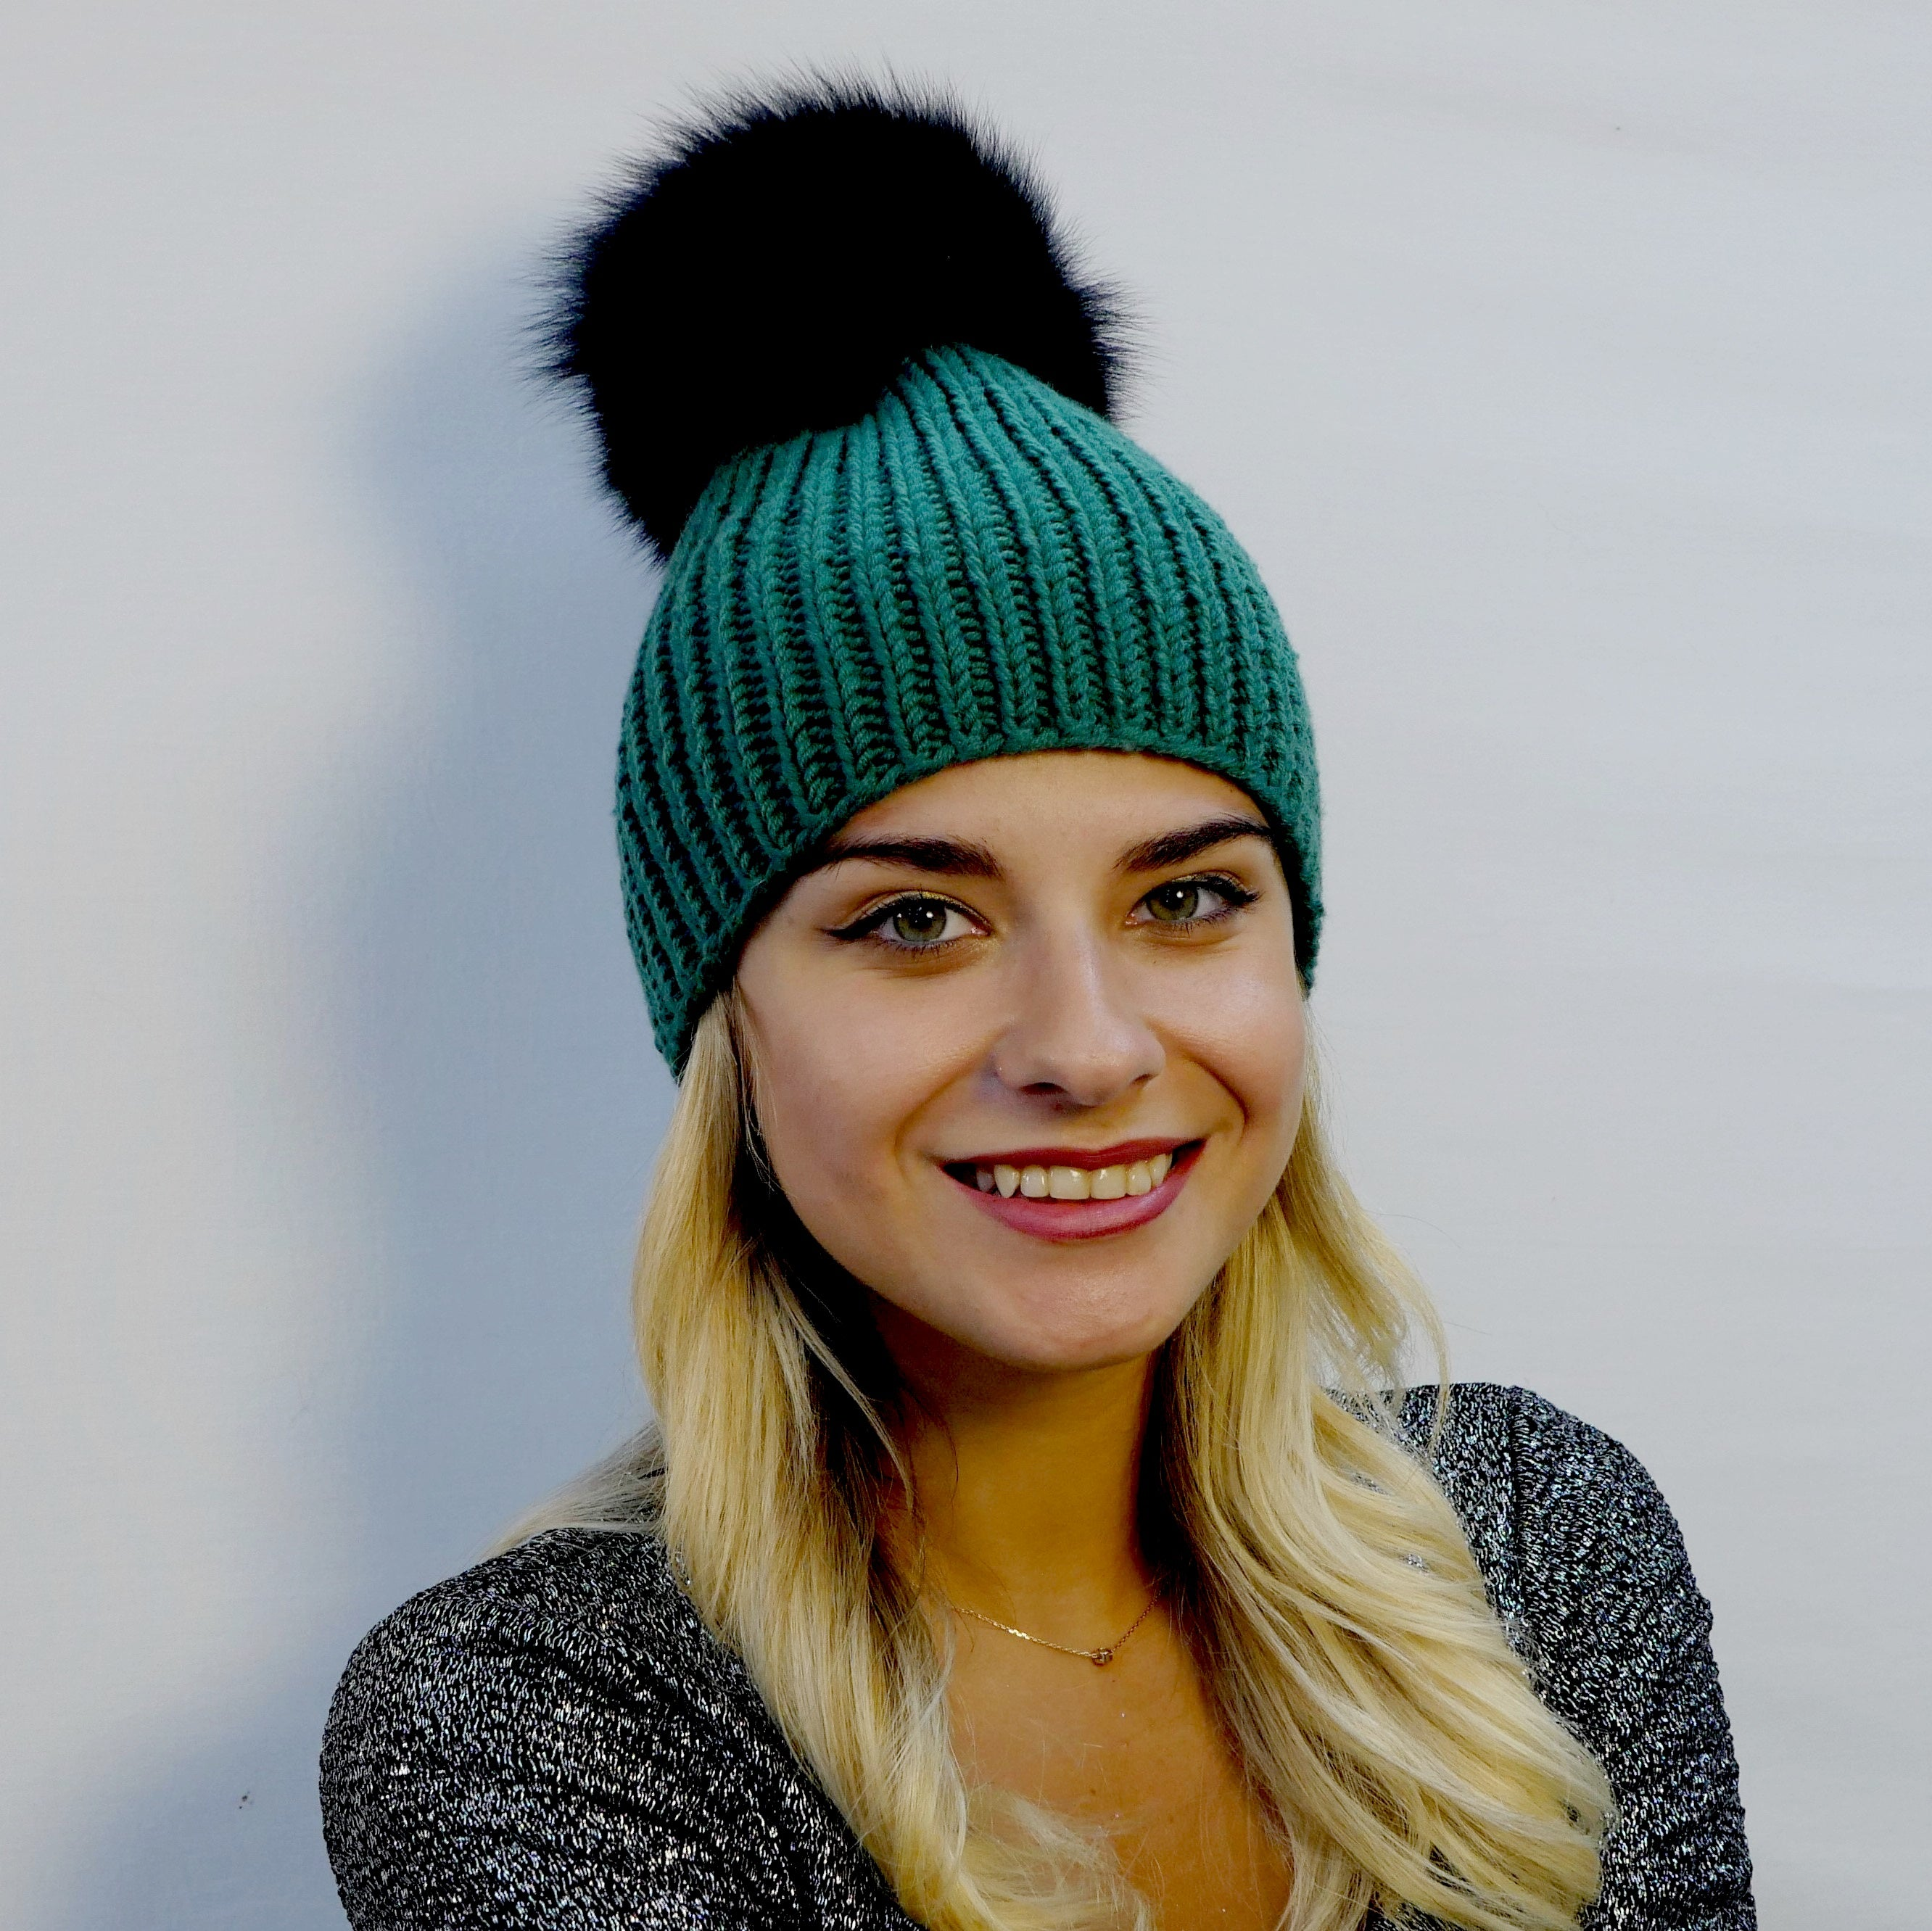 beanie hat ribbed handknitted in pine green extra fine merino wool with an extra large black fox fur pompom